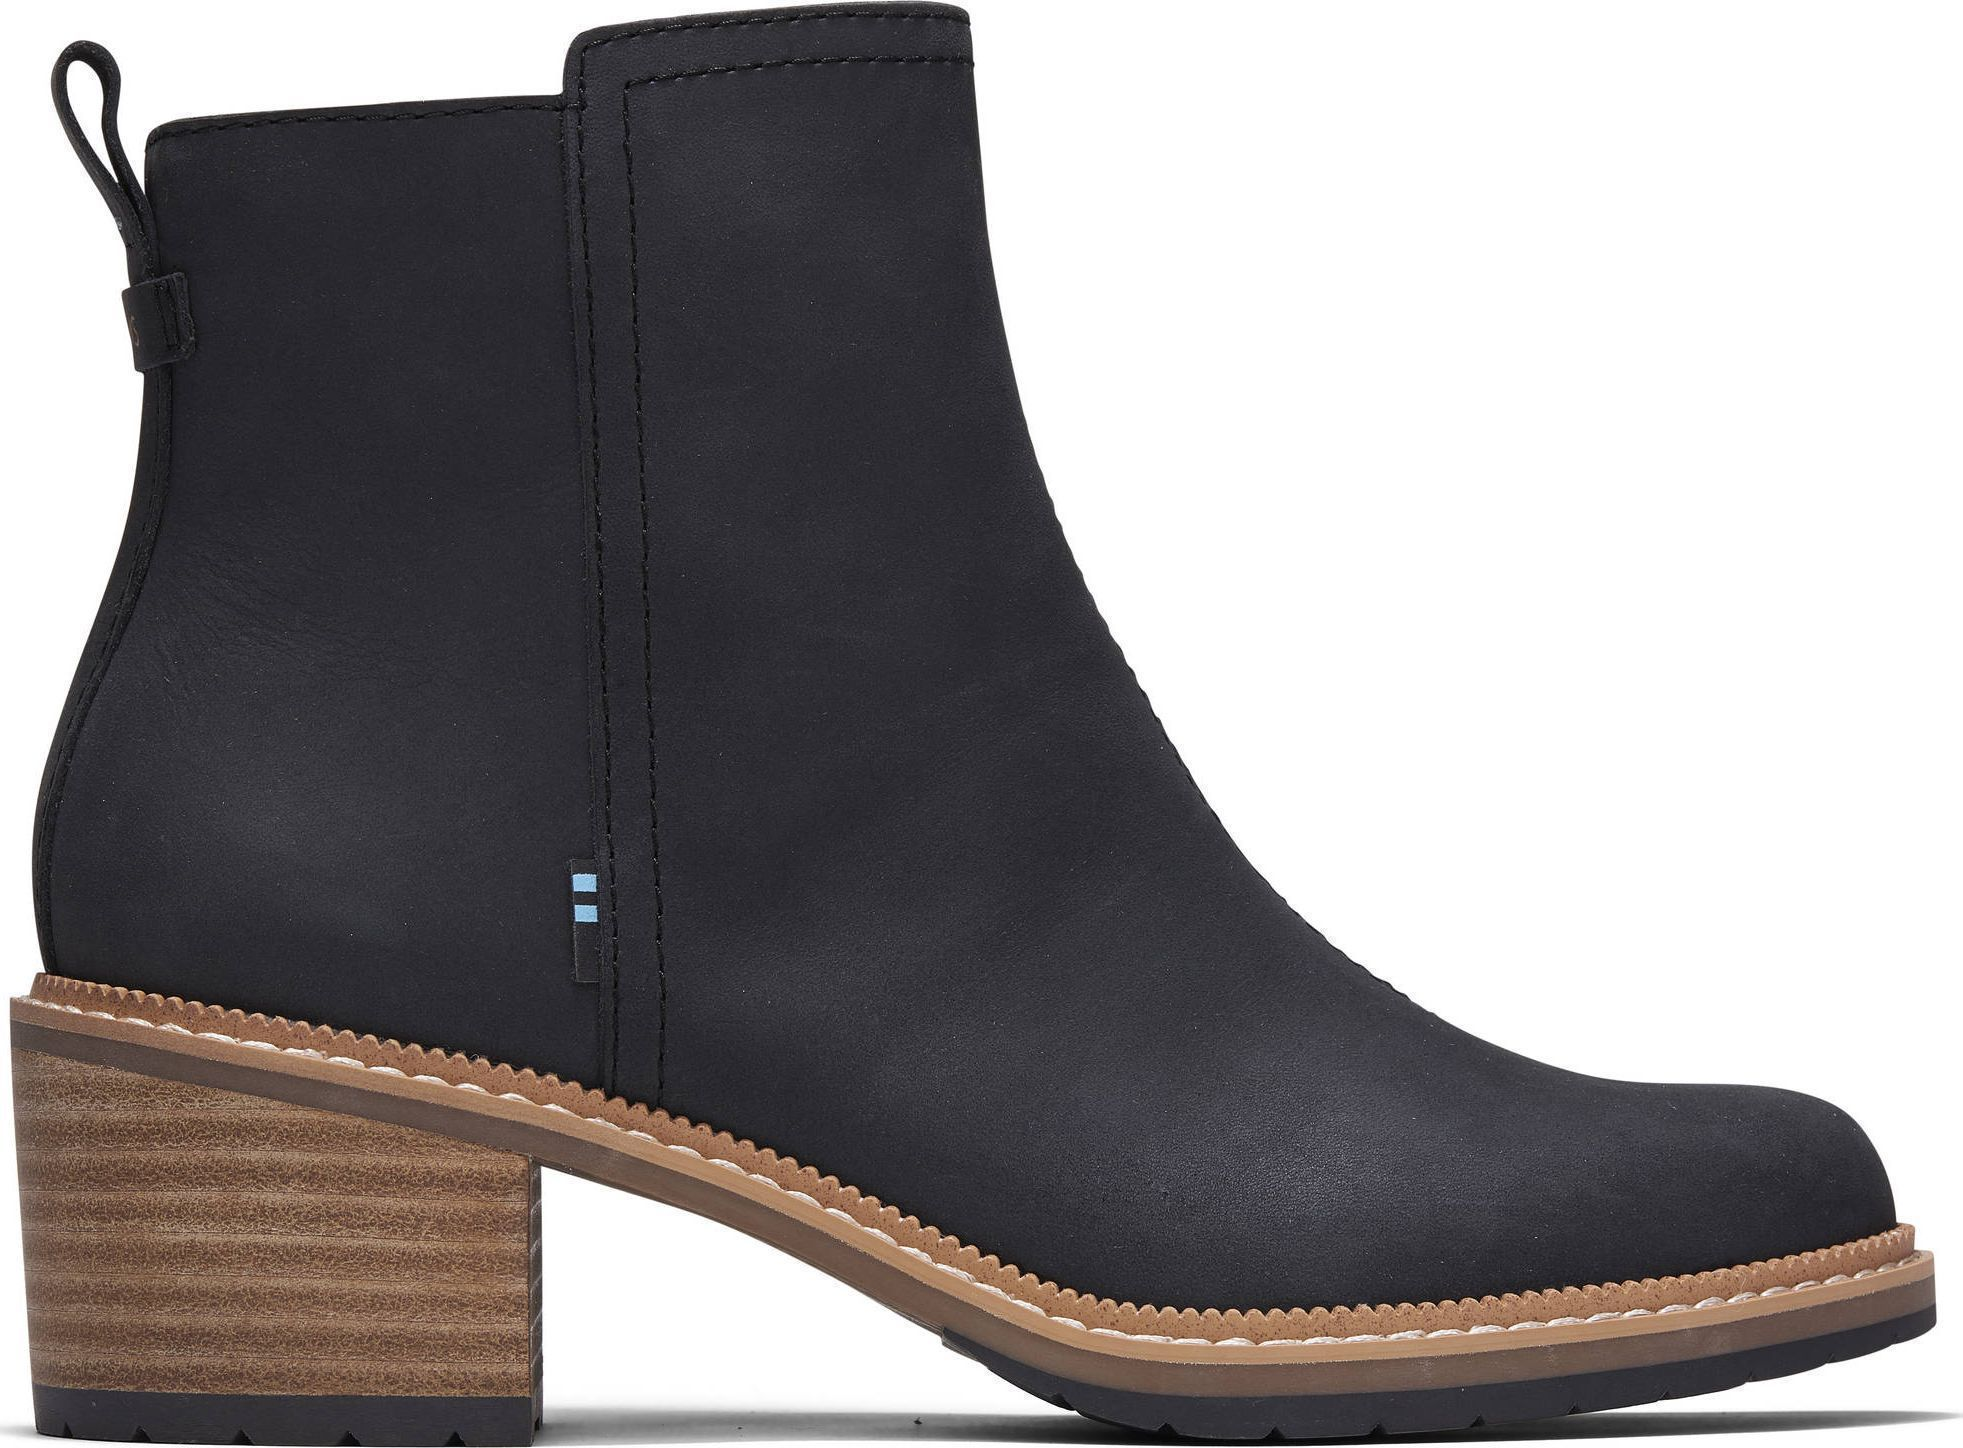 TOMS Smooth Waxy Leather Women's Marina Bootie Black 37